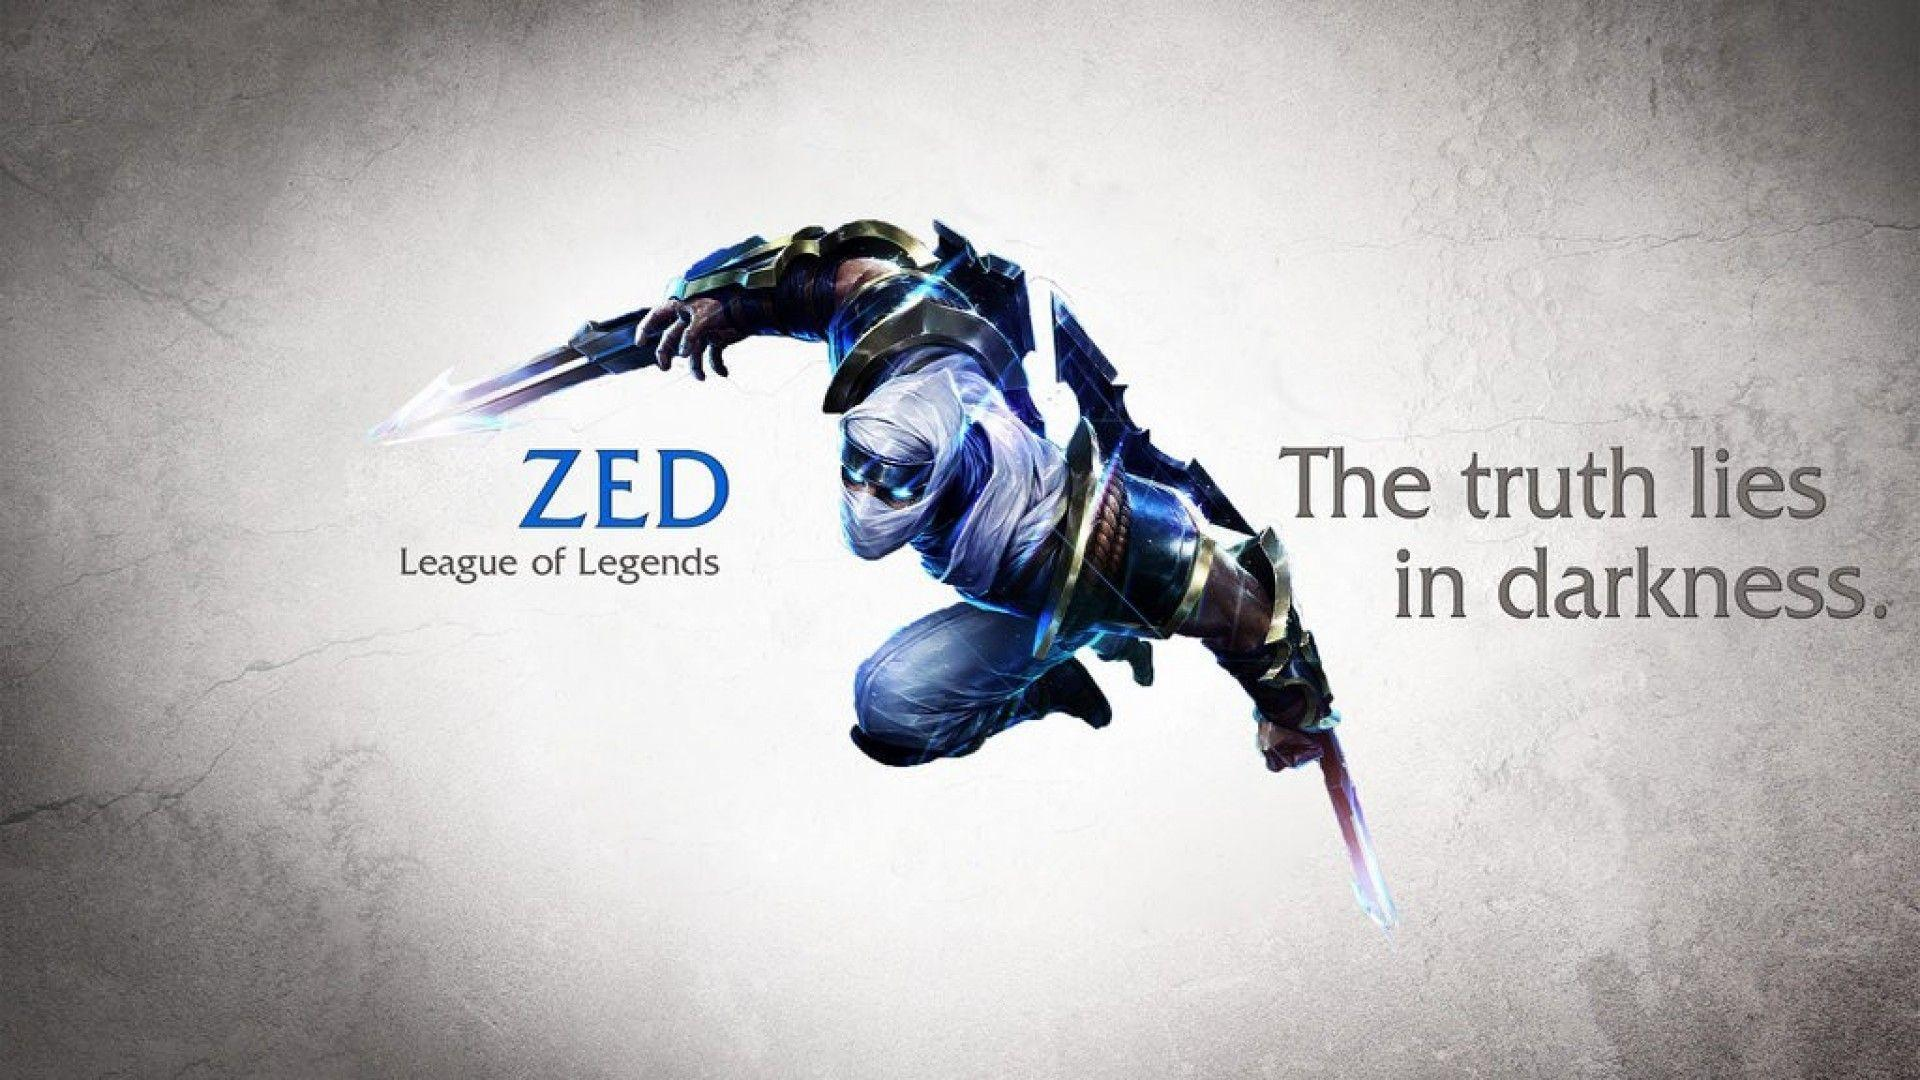 Wallpapers For > League Of Legends Zed Wallpapers